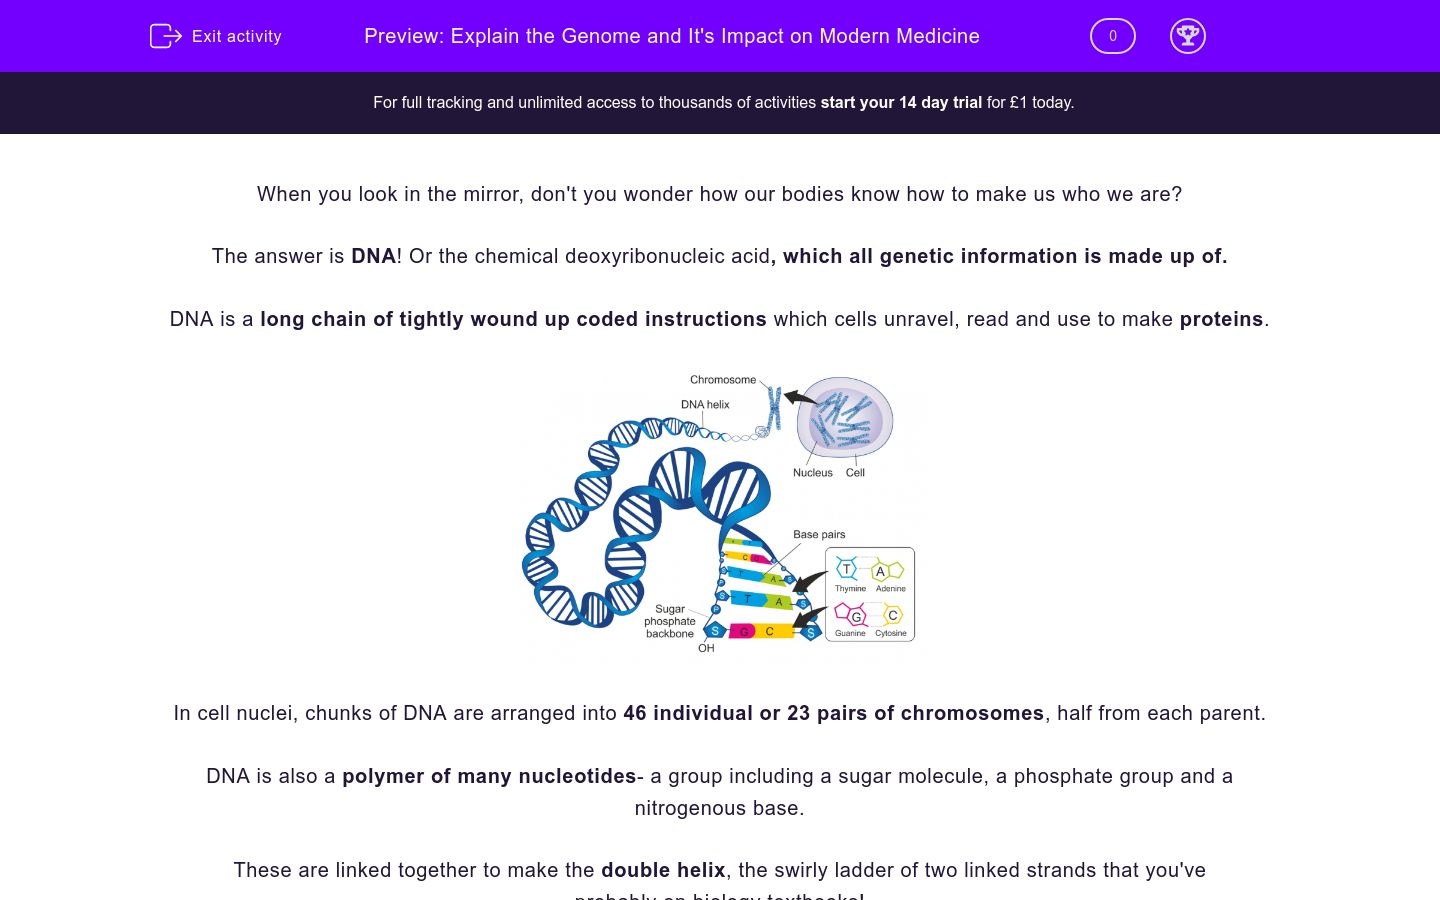 'Explain the Genome and its Impact on Modern Medicine' worksheet